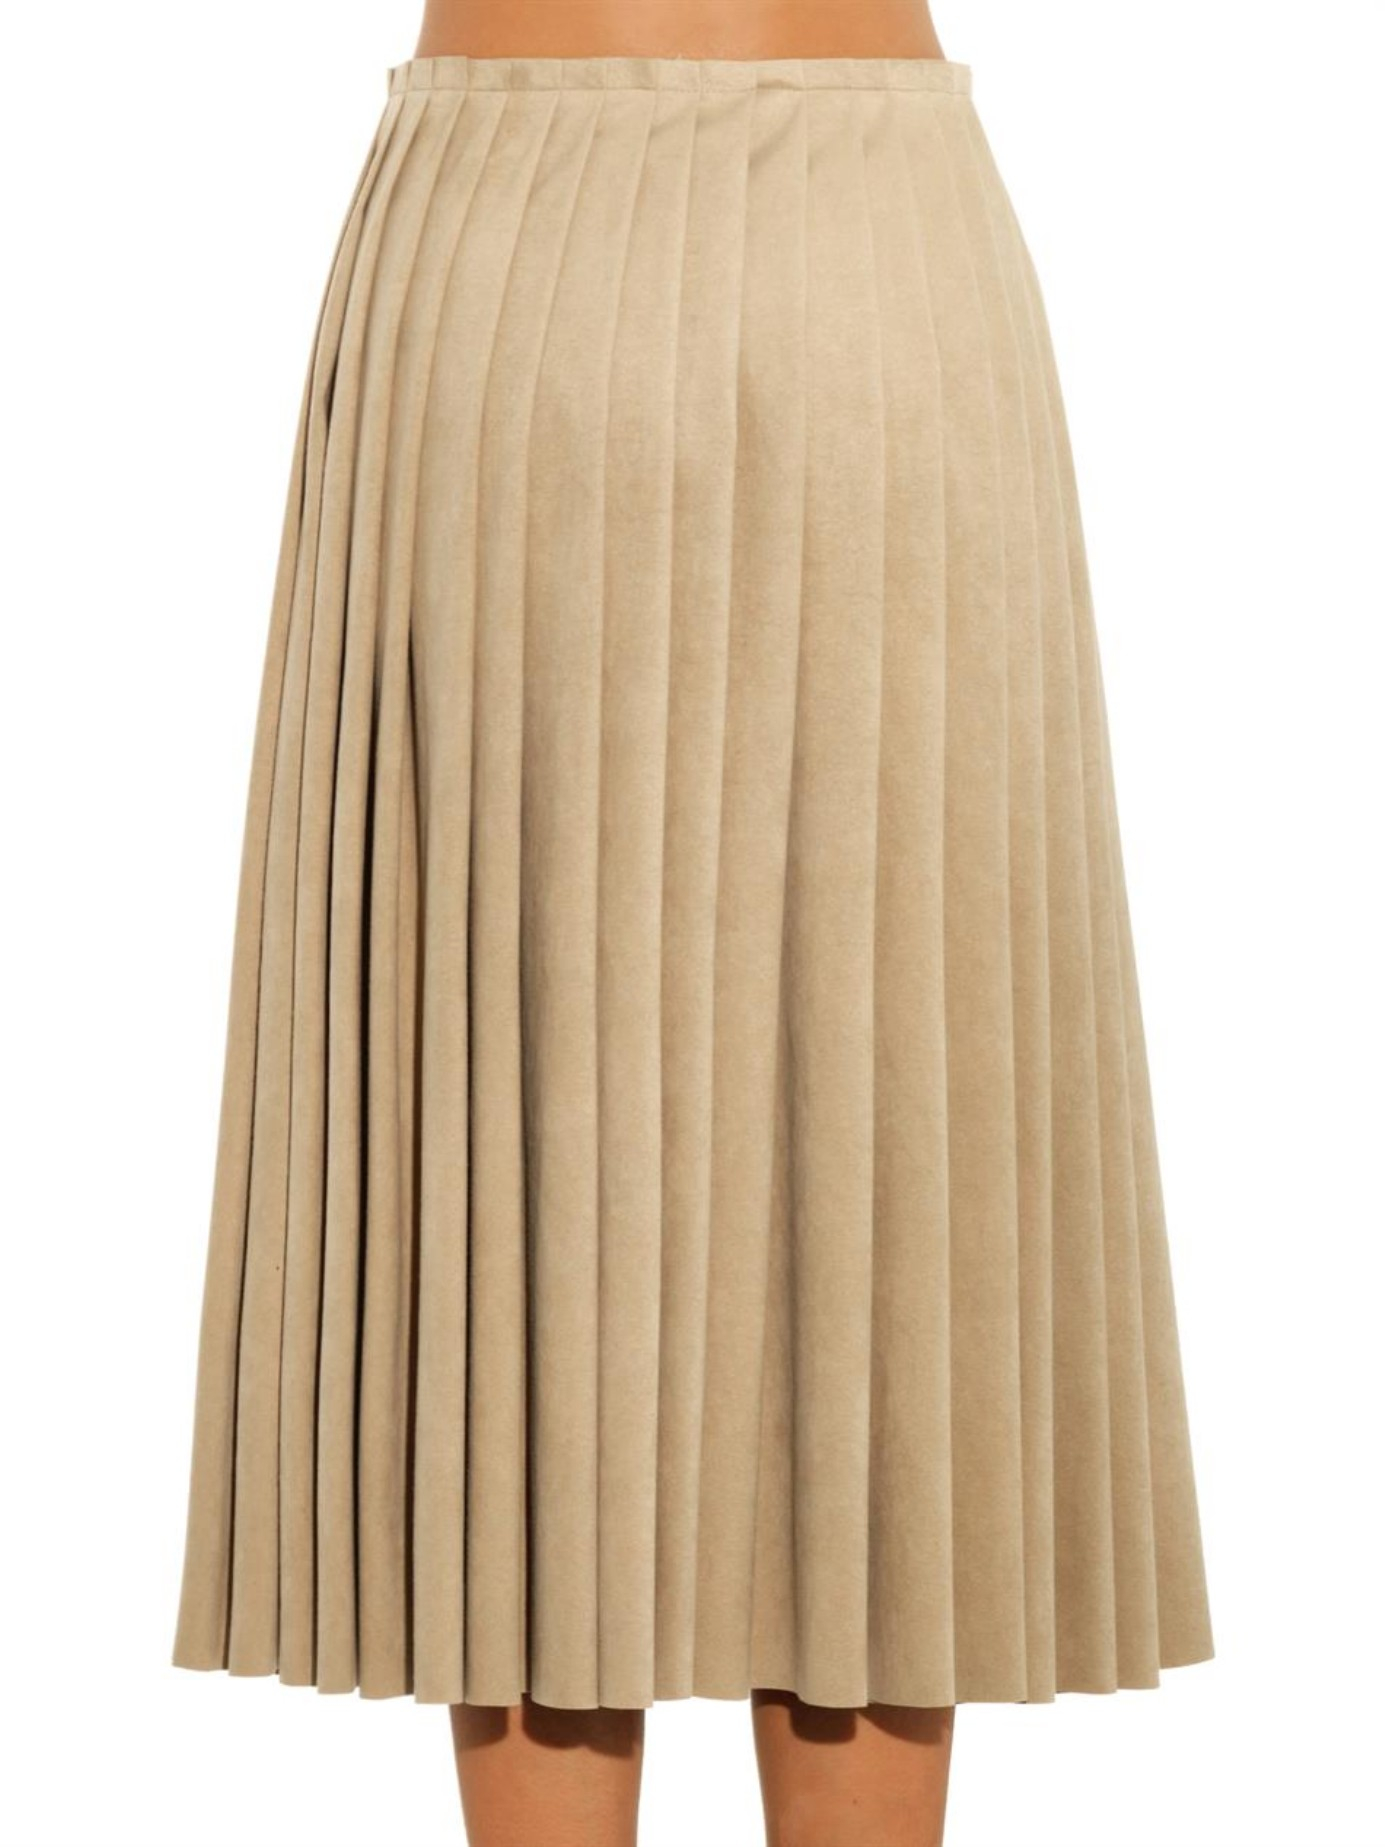 8e6591c98 Acne Studios Kensington Faux-Suede Pleated Skirt in Natural - Lyst